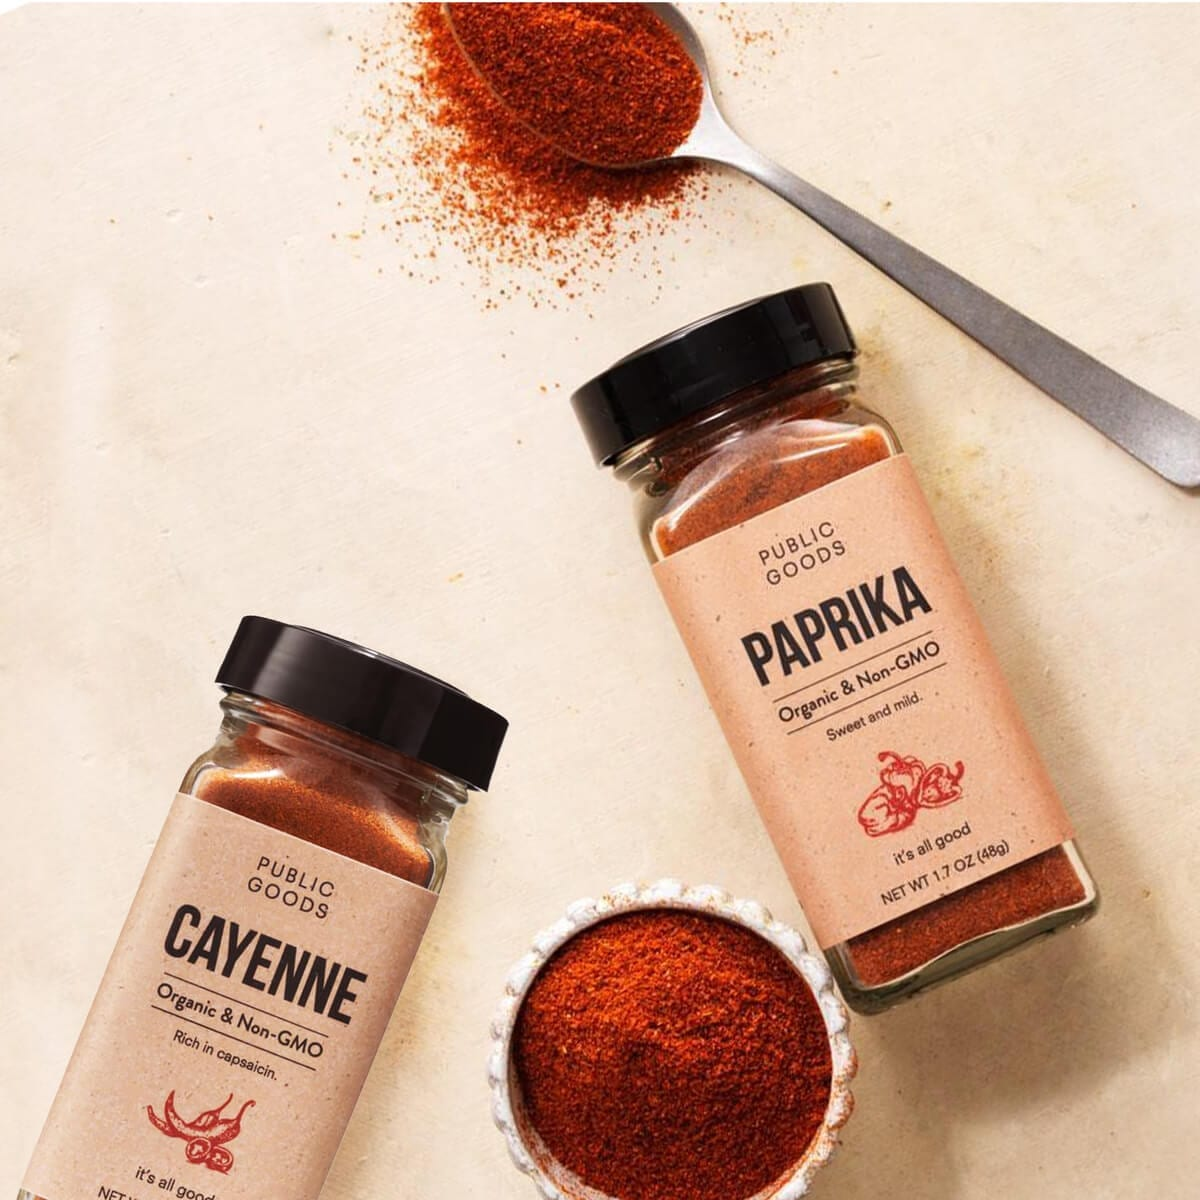 Paprika vs Cayenne Pepper: What's the Difference?